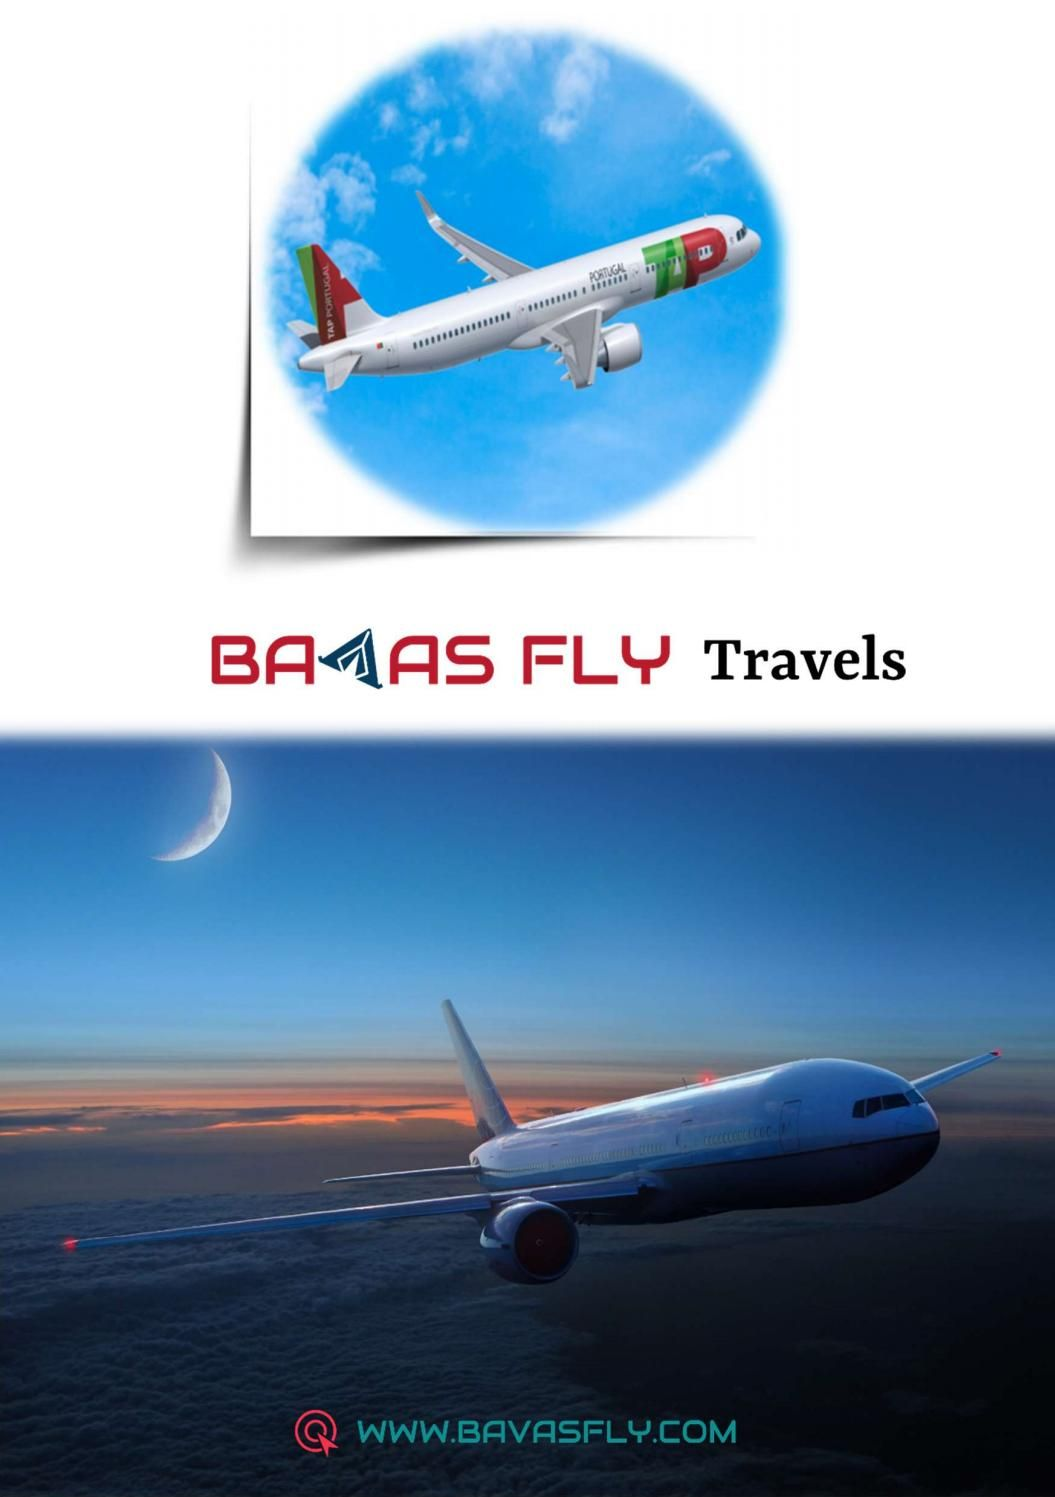 Bavasfly fly travel airplane view travel